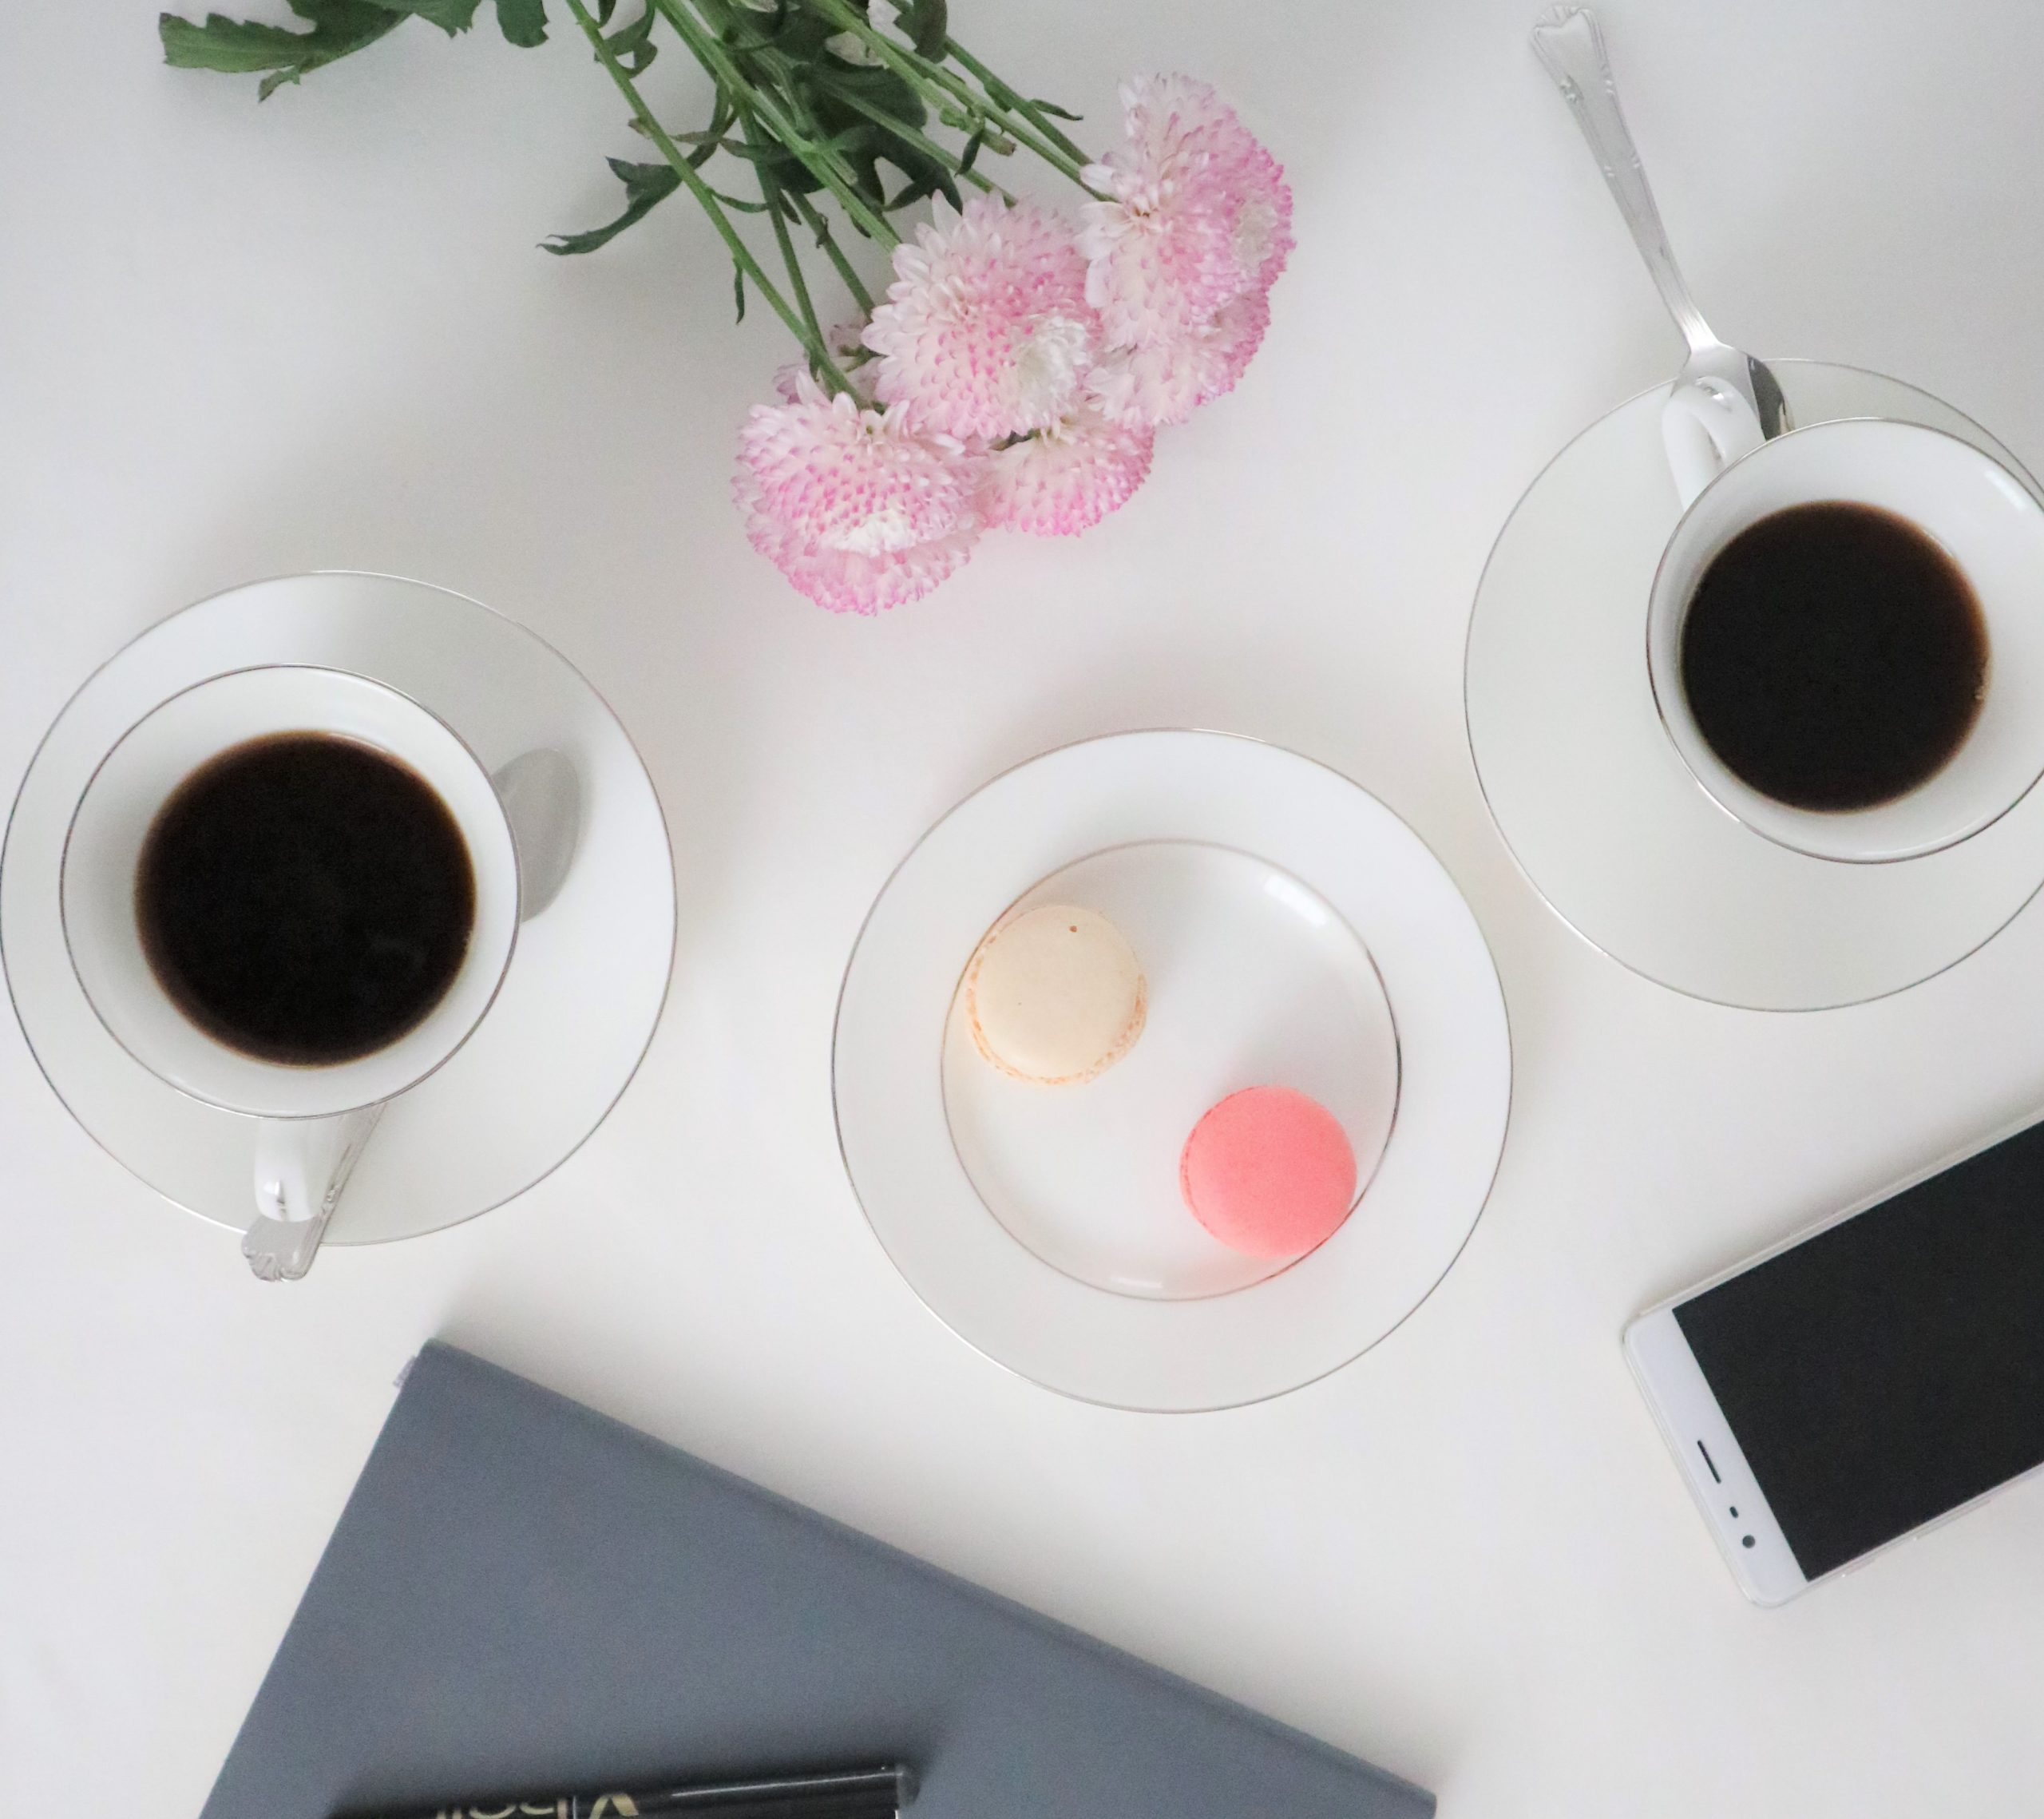 A white table with two coffee cups with saucer and spoons. There's a plate with a pink macaron and a beige macaron. Partial view of pink flowers, a notebook and pen and a mobile phone. The image suggests a setting for a face2face meeting.